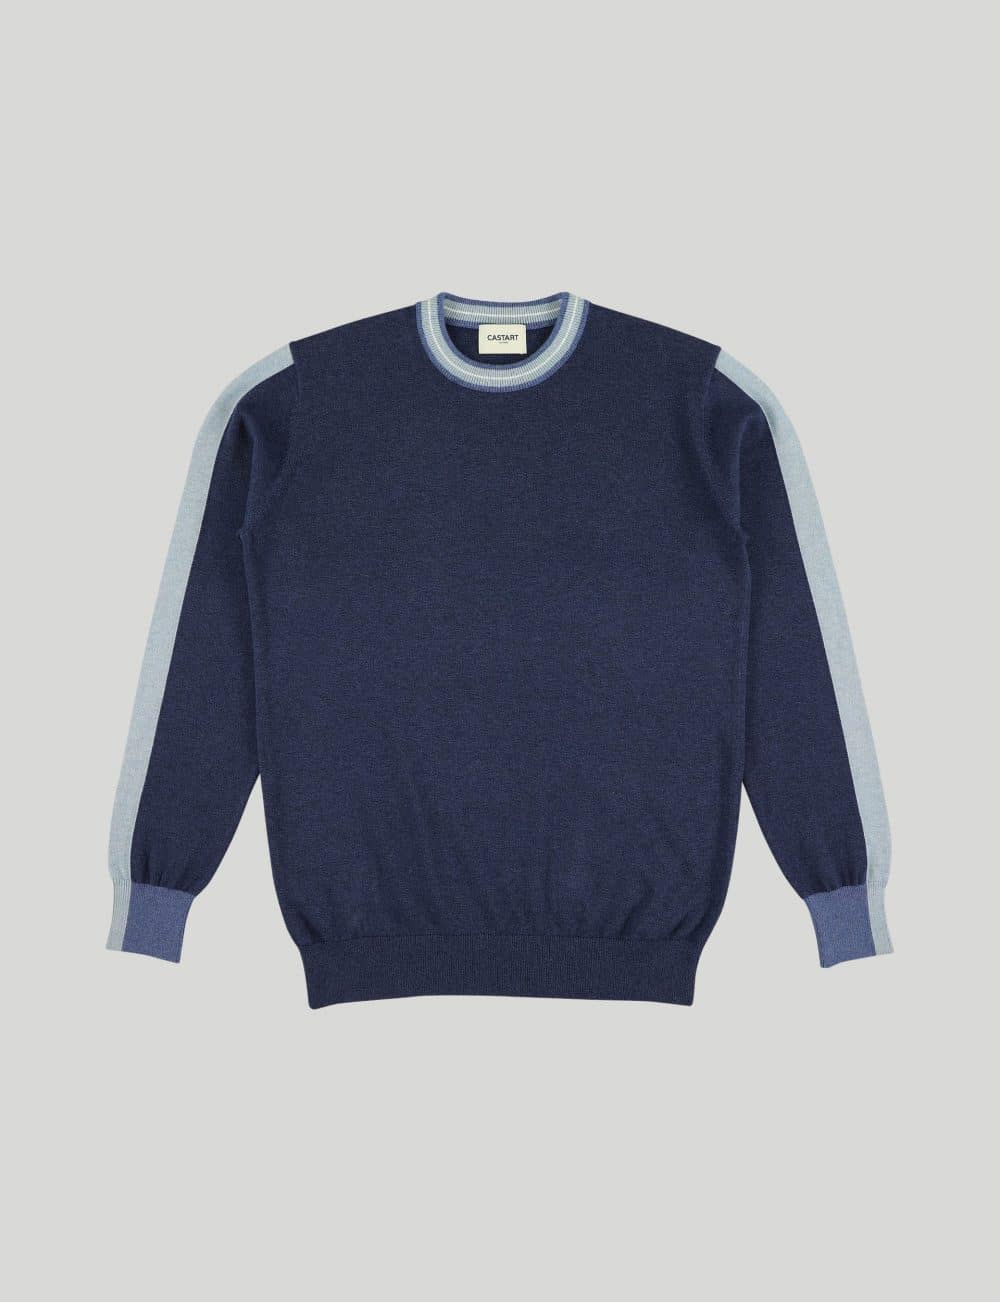 Castart - Sunbuddy knitwear - Navy Blue